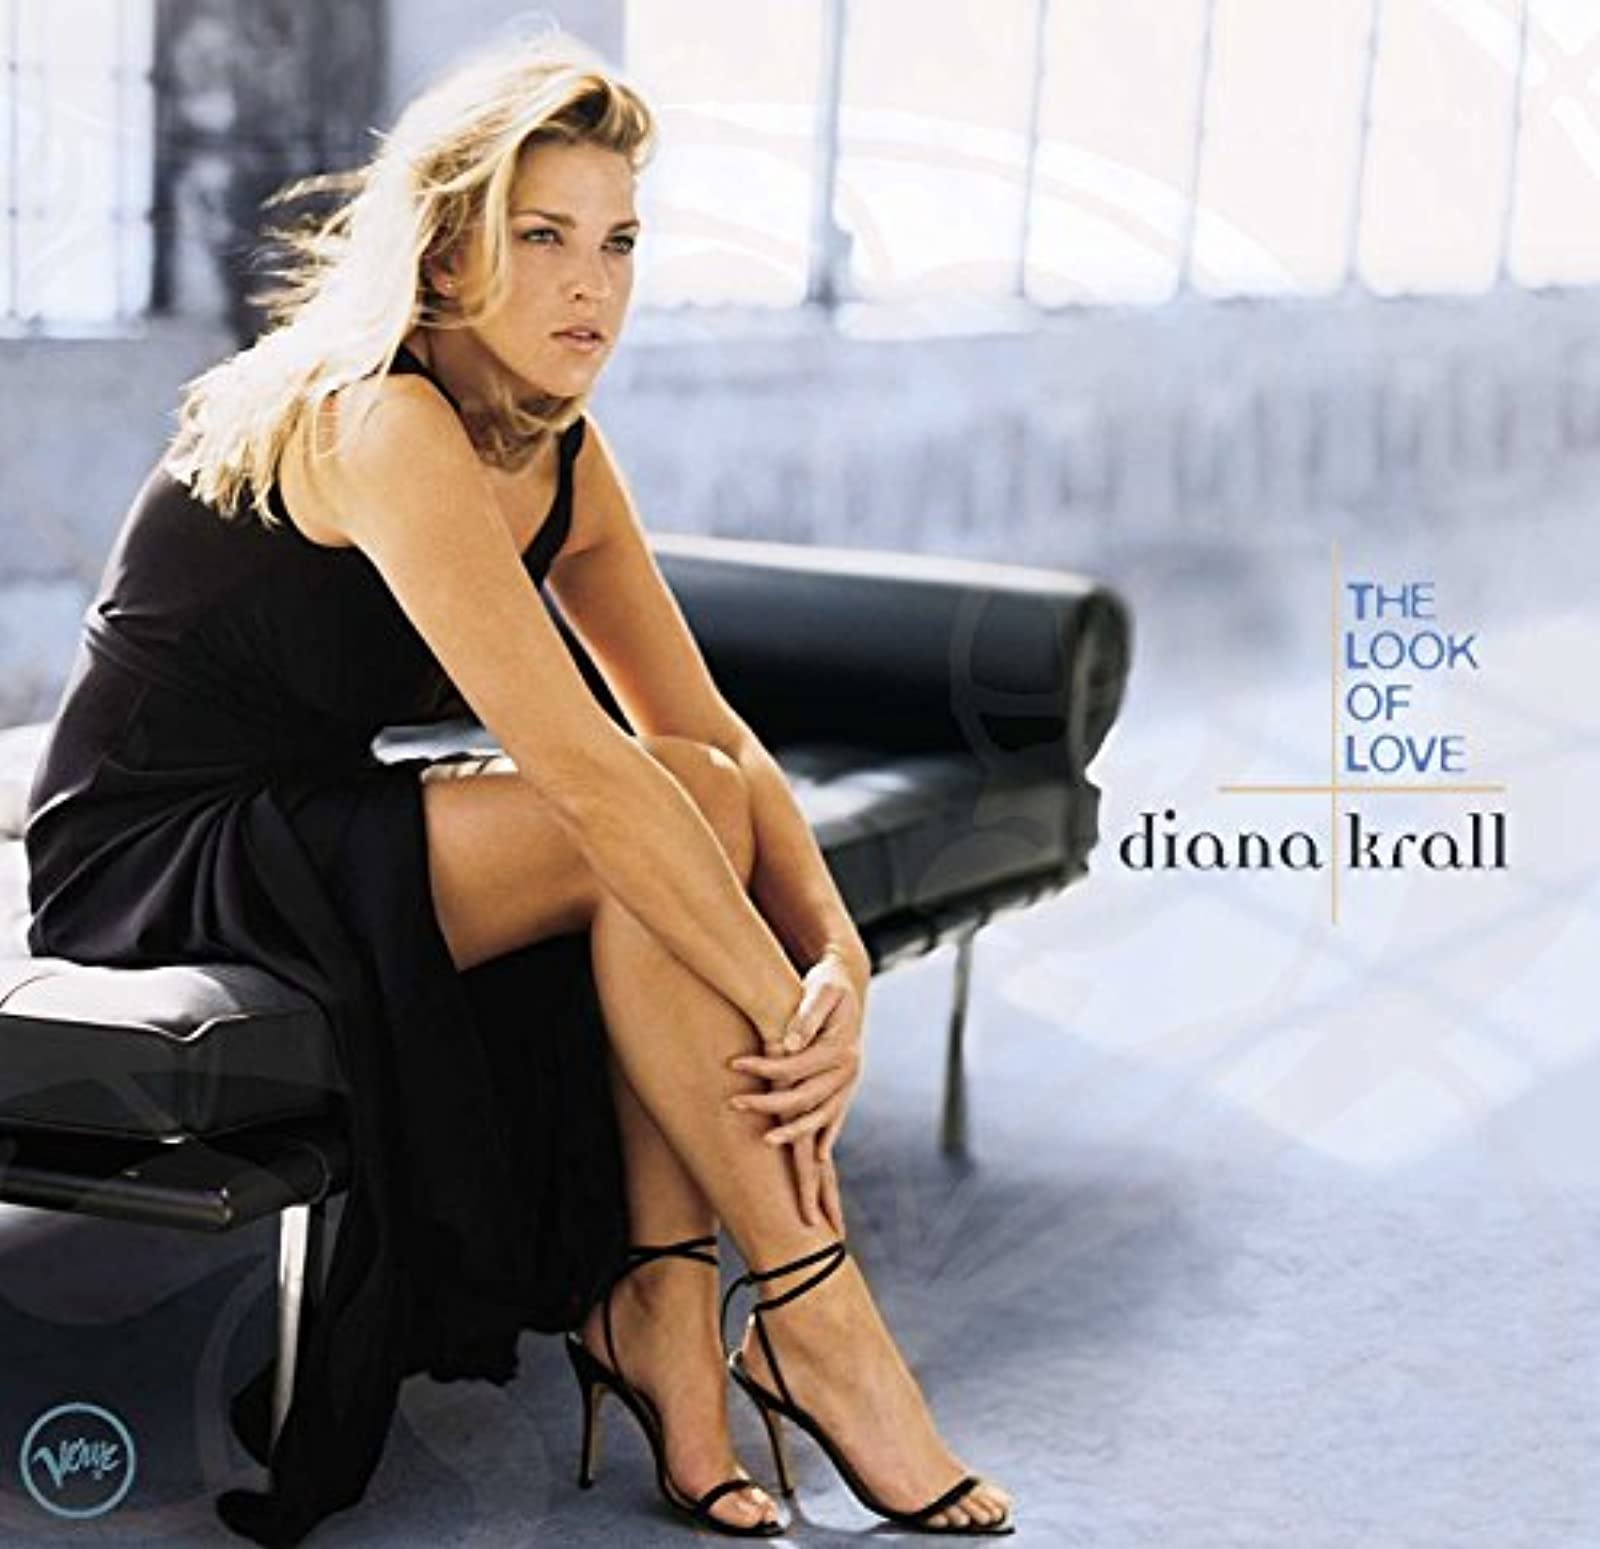 The Look Of Love By Diana Krall On Audio CD Album 2001